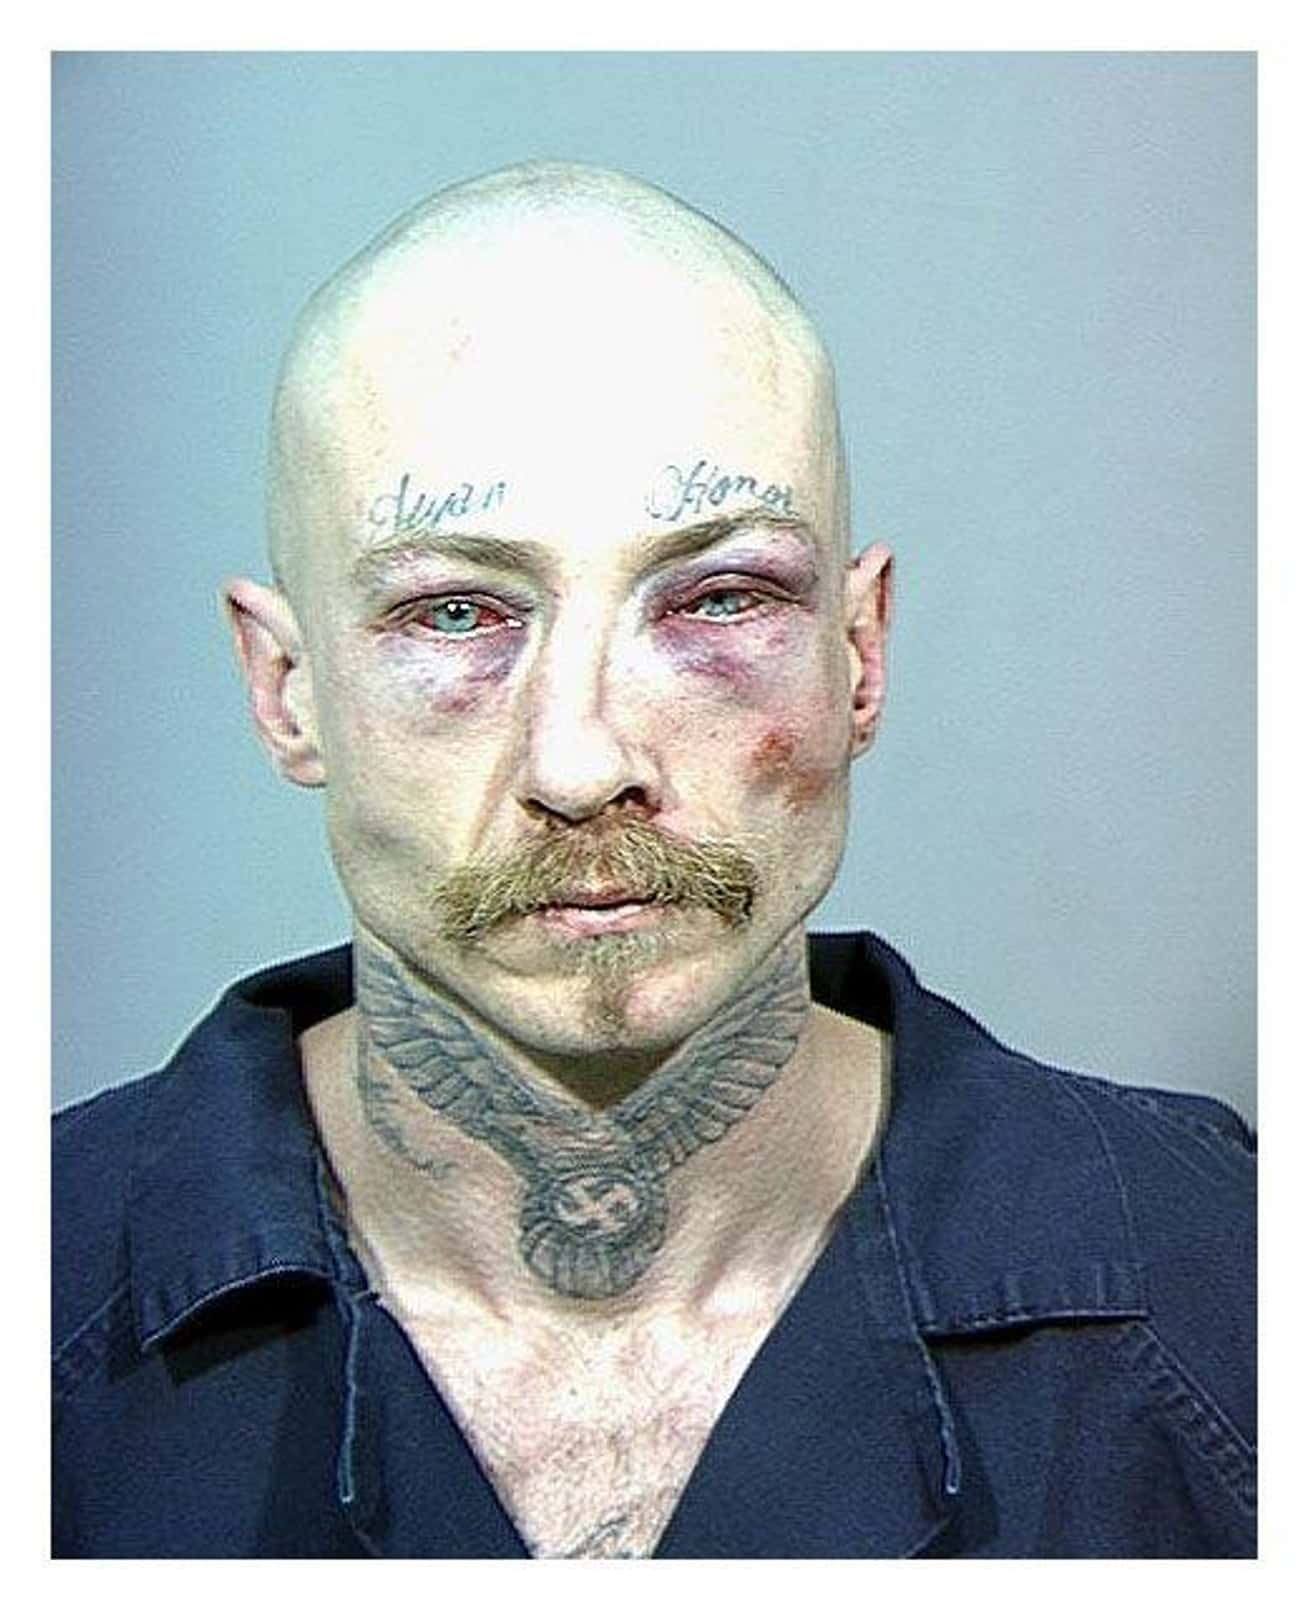 Being Terrifying: Nailed It. is listed (or ranked) 4 on the list Scary Mugshots Of People You Wouldn't Want To Share A Cell With